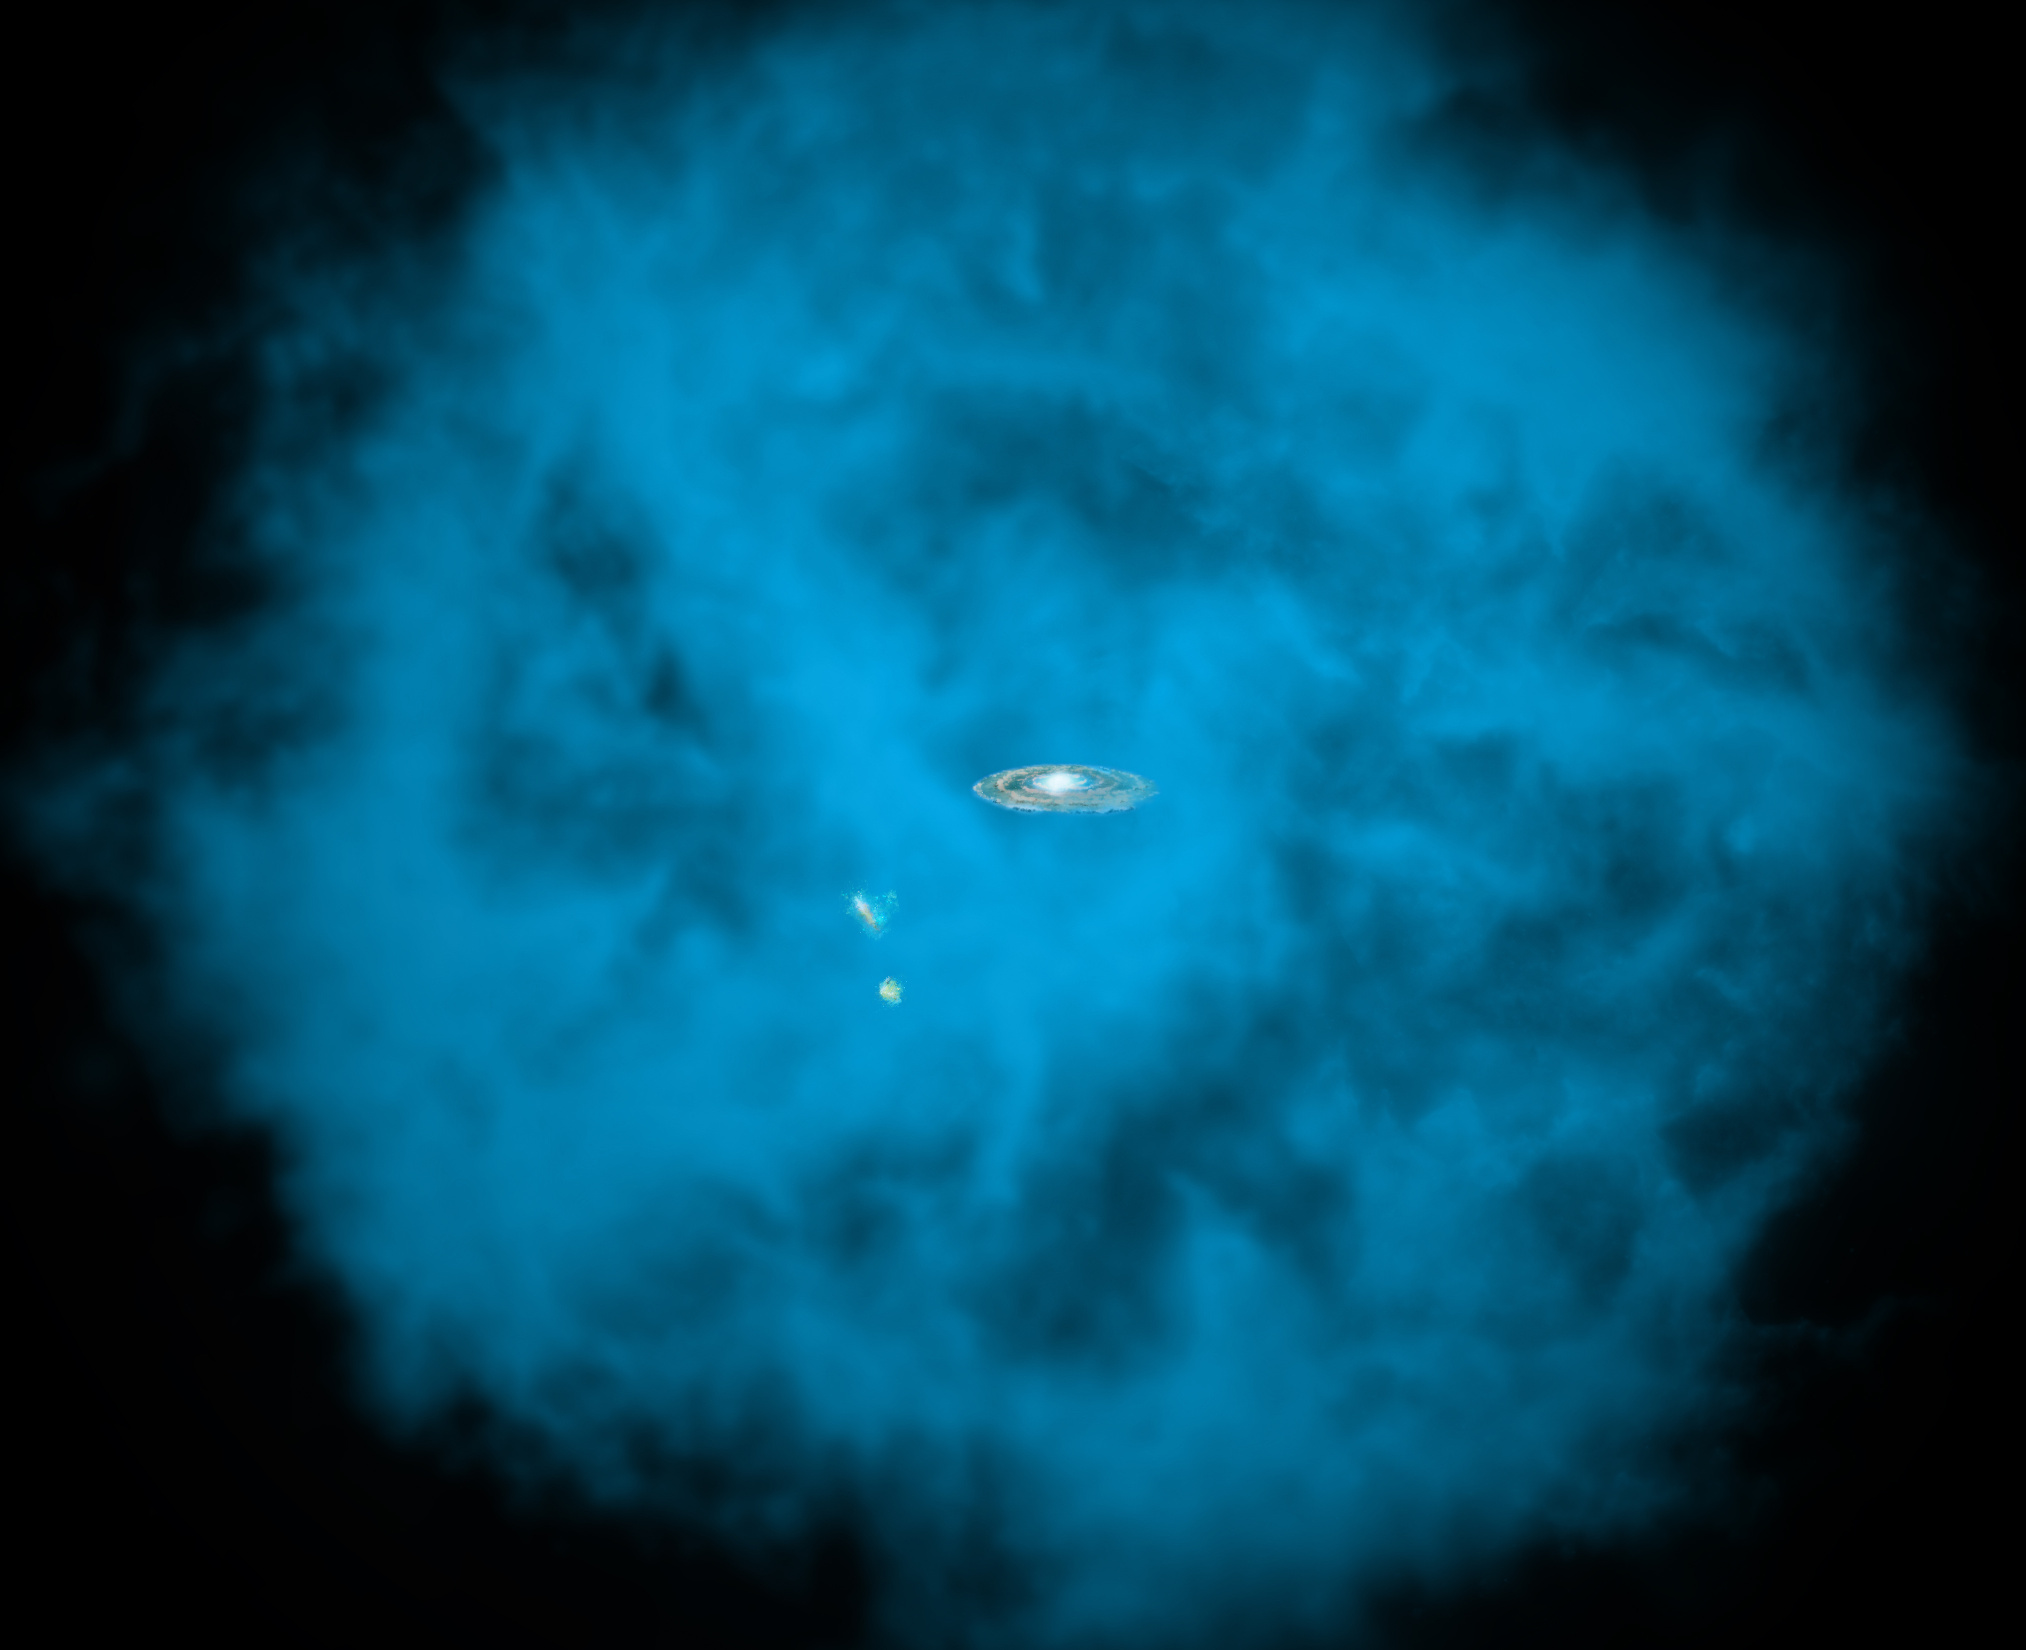 Our Milky Way galaxy and its small companions are surrounded by a giant halo of million-degree gas (seen in blue in this artists' rendition) that is only visible to X-ray telescopes in space. University of Michigan astronomers discovered that this massive hot halo spins in the same direction as the Milky Way disc and at a comparable speed. Image credits: NASA/CXC/M.Weiss/Ohio State/A Gupta et al.